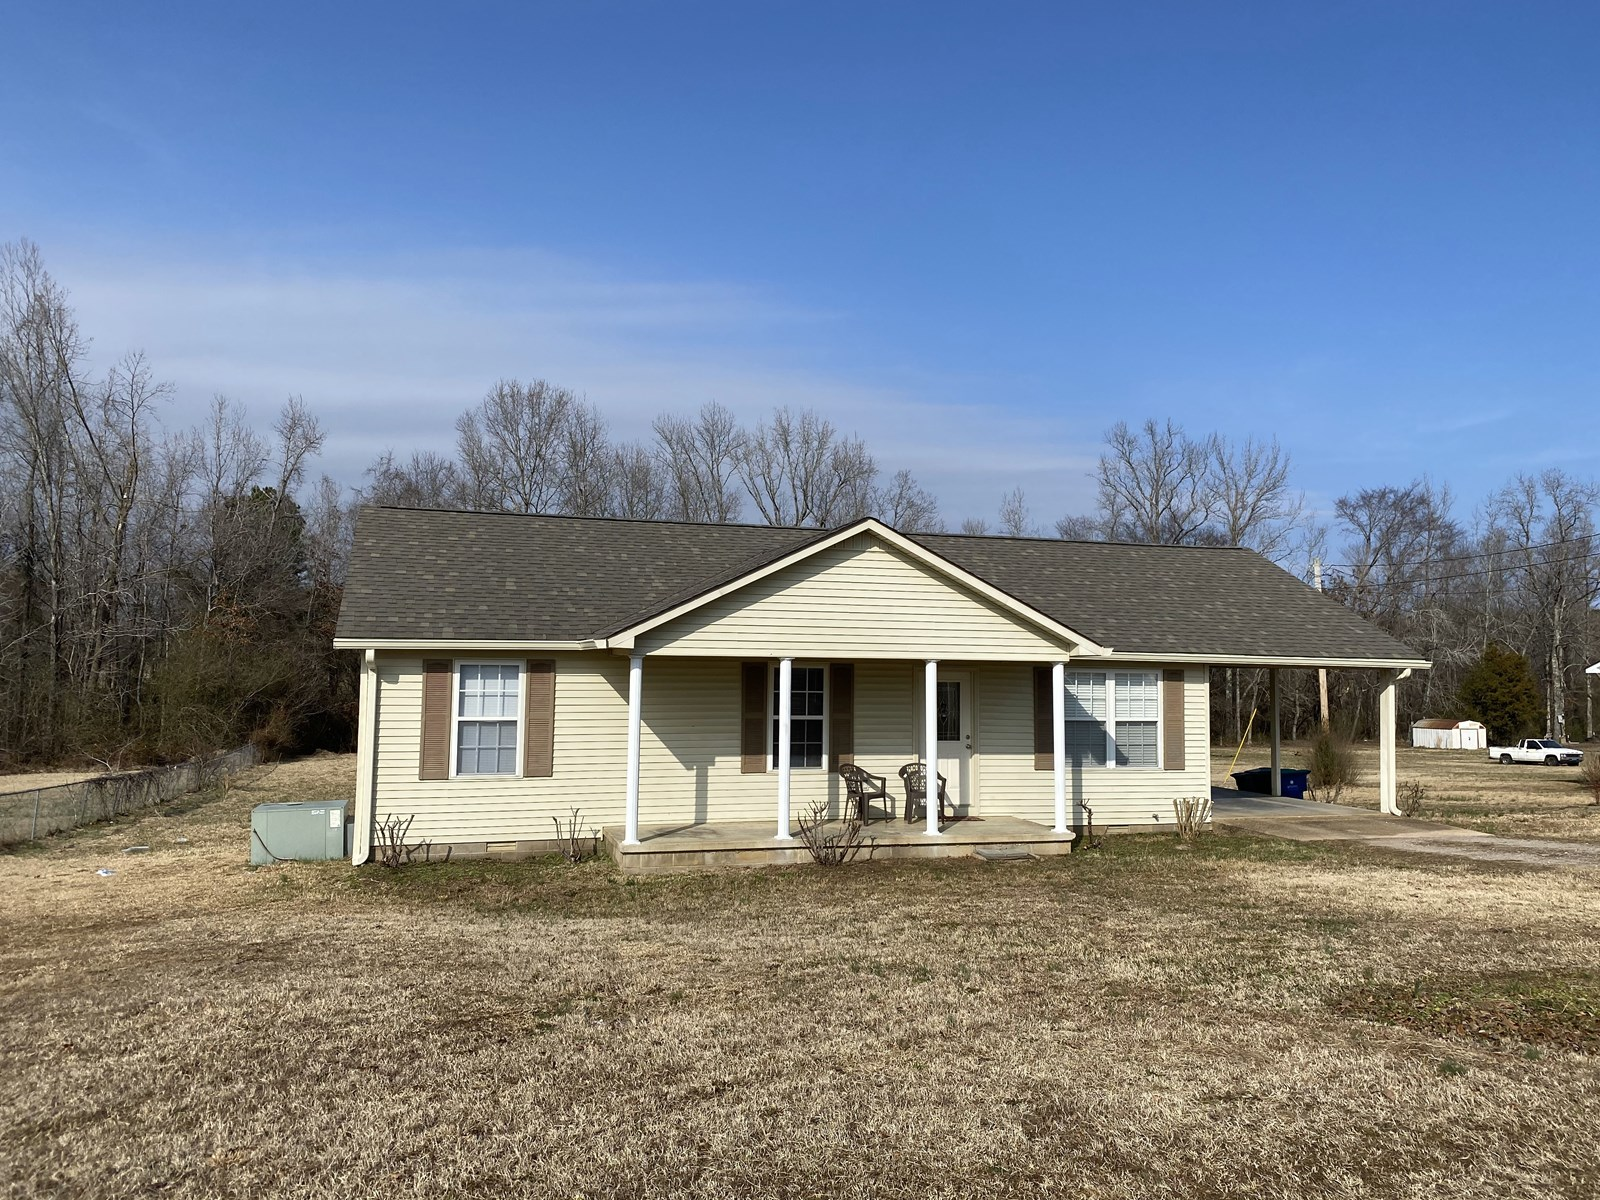 3 BEDROOM HOME IN ADAMSVILLE, TN FOR SALE, NEWLY REMODELED